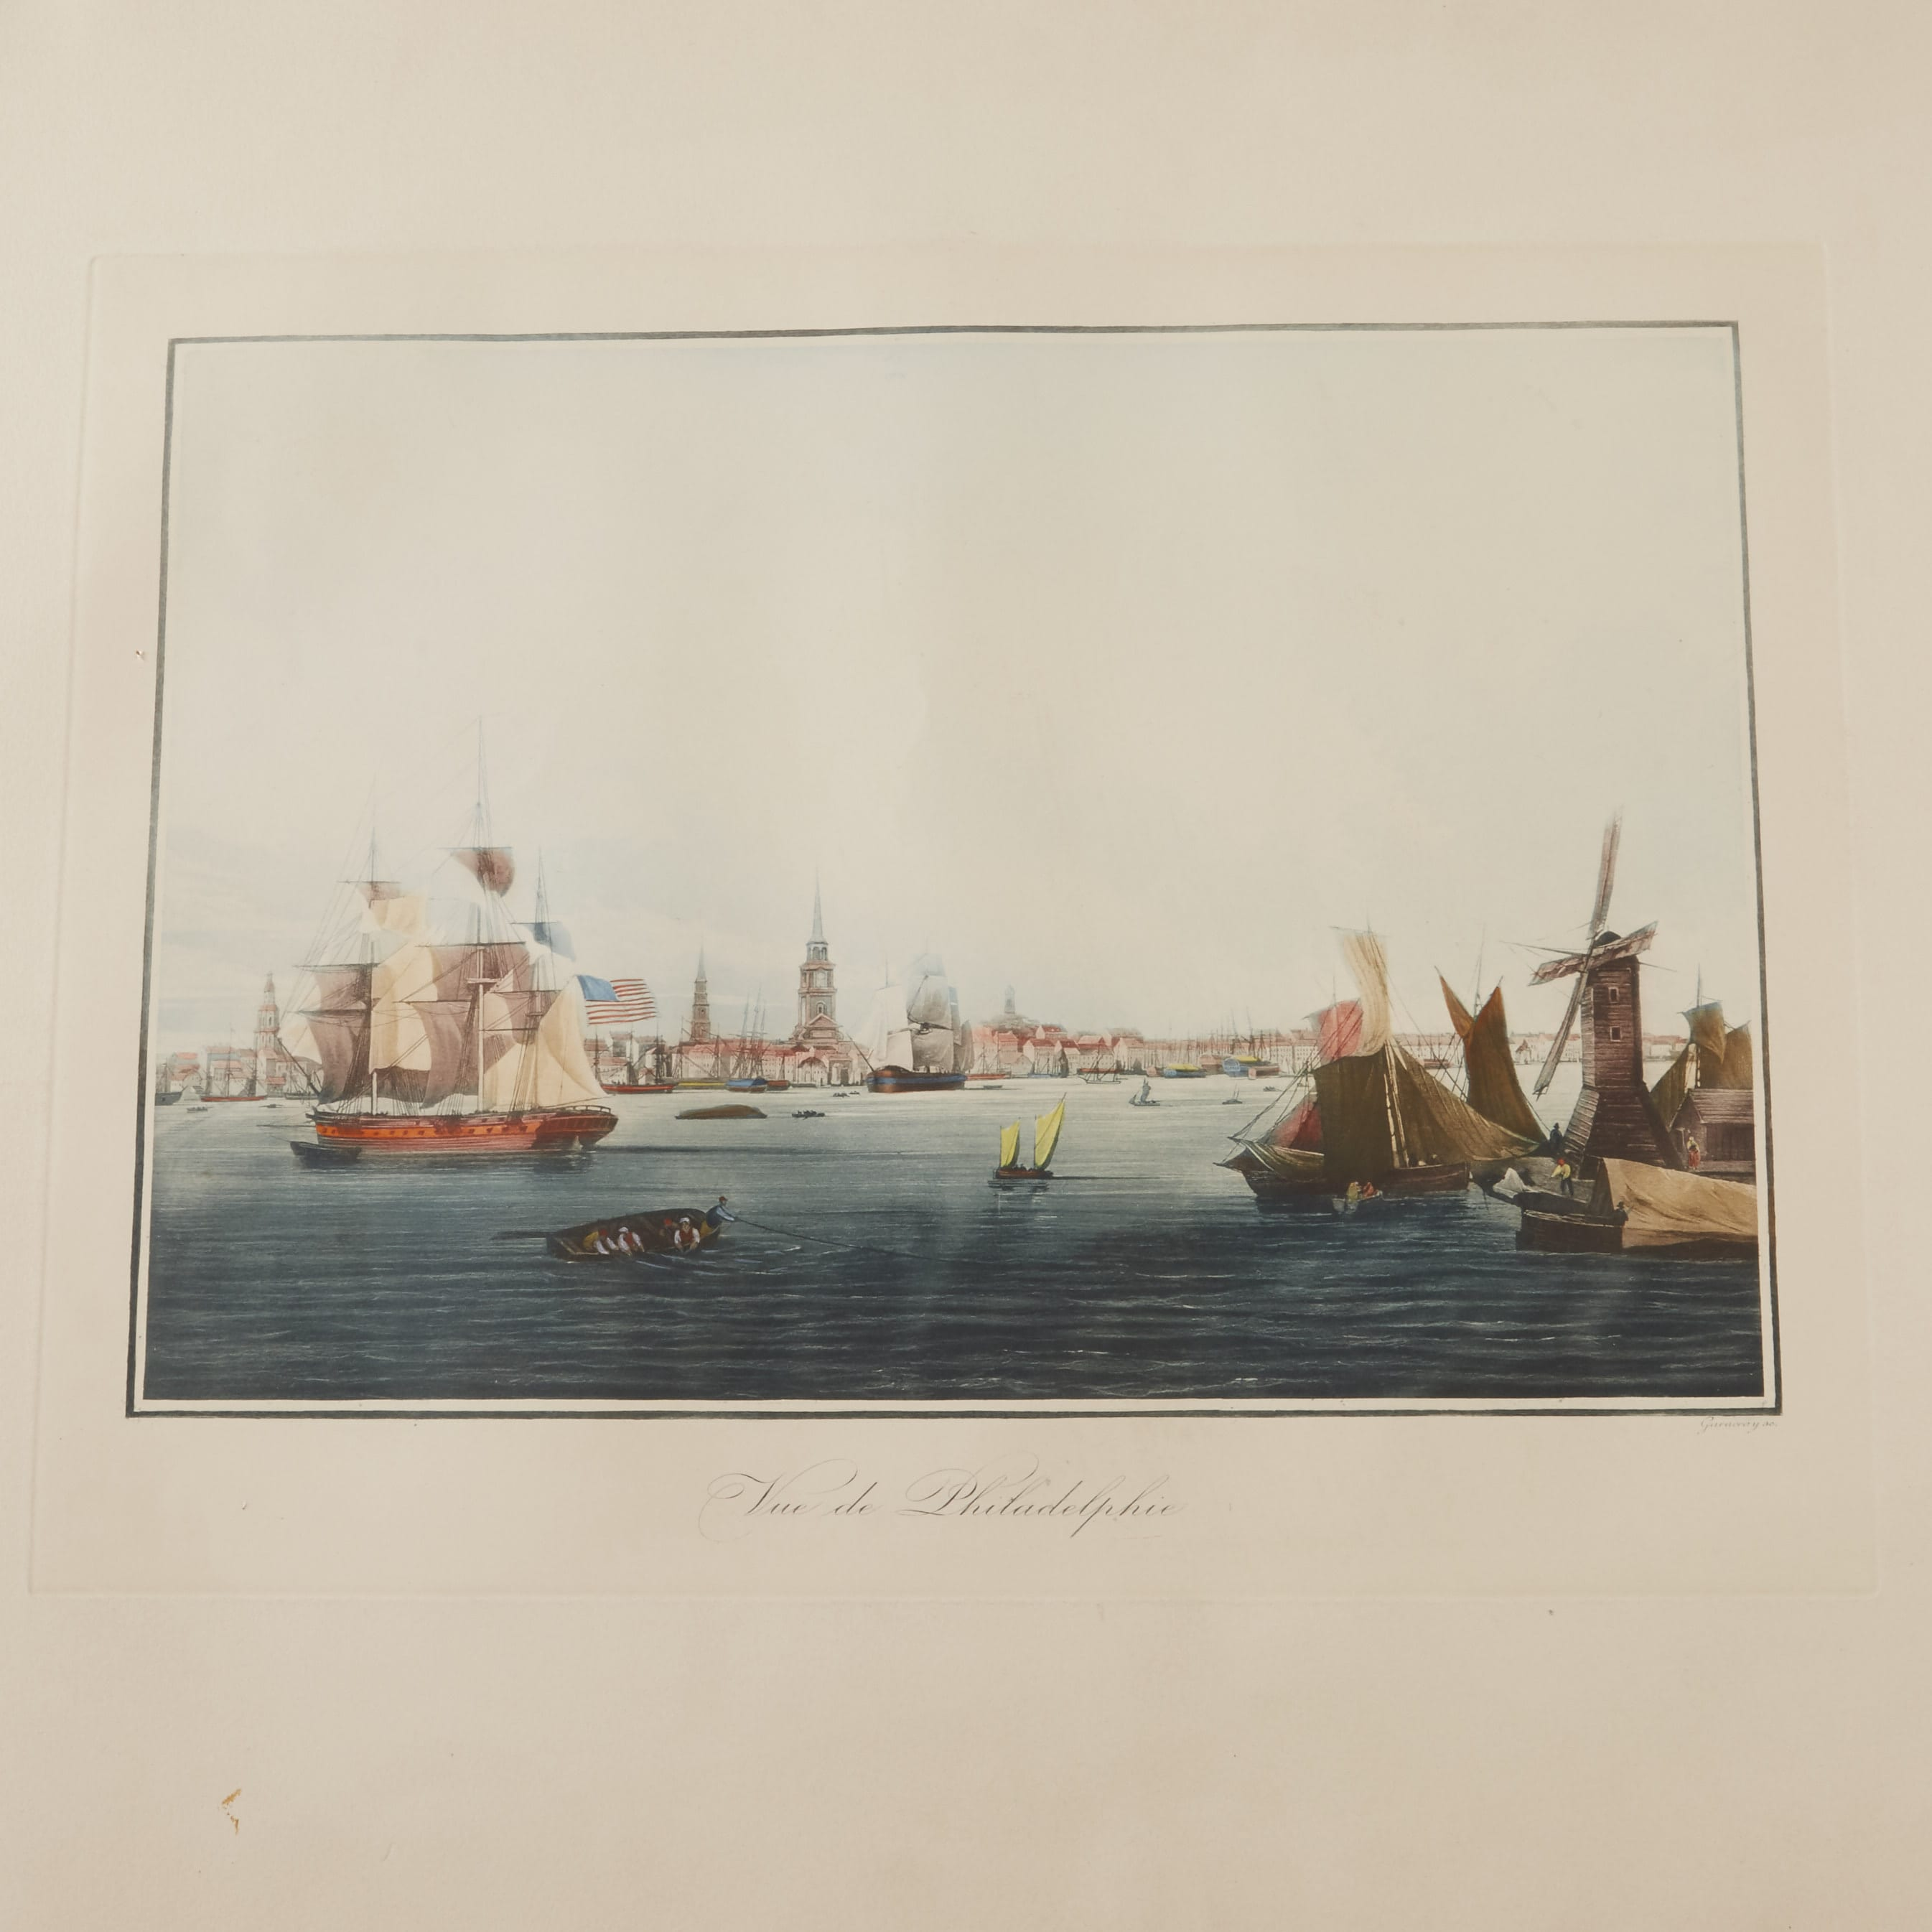 Lot 222: Louis Le Breton Vue de Philadelphie Aquatint